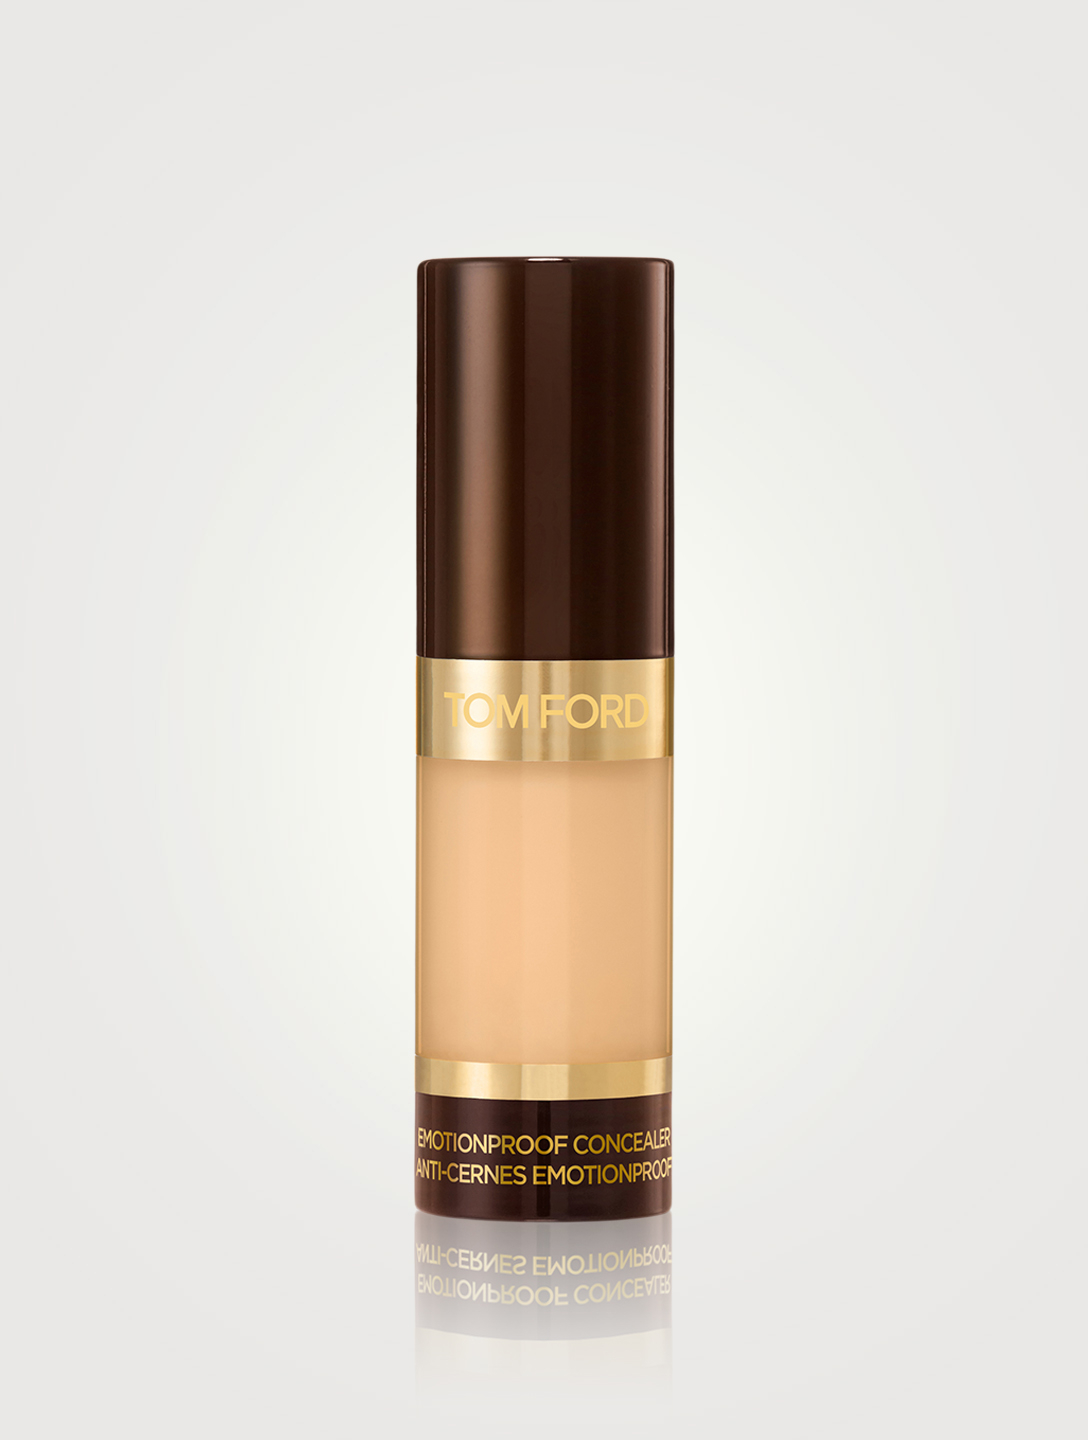 TOM FORD Emotionproof Concealer Beauty Neutral